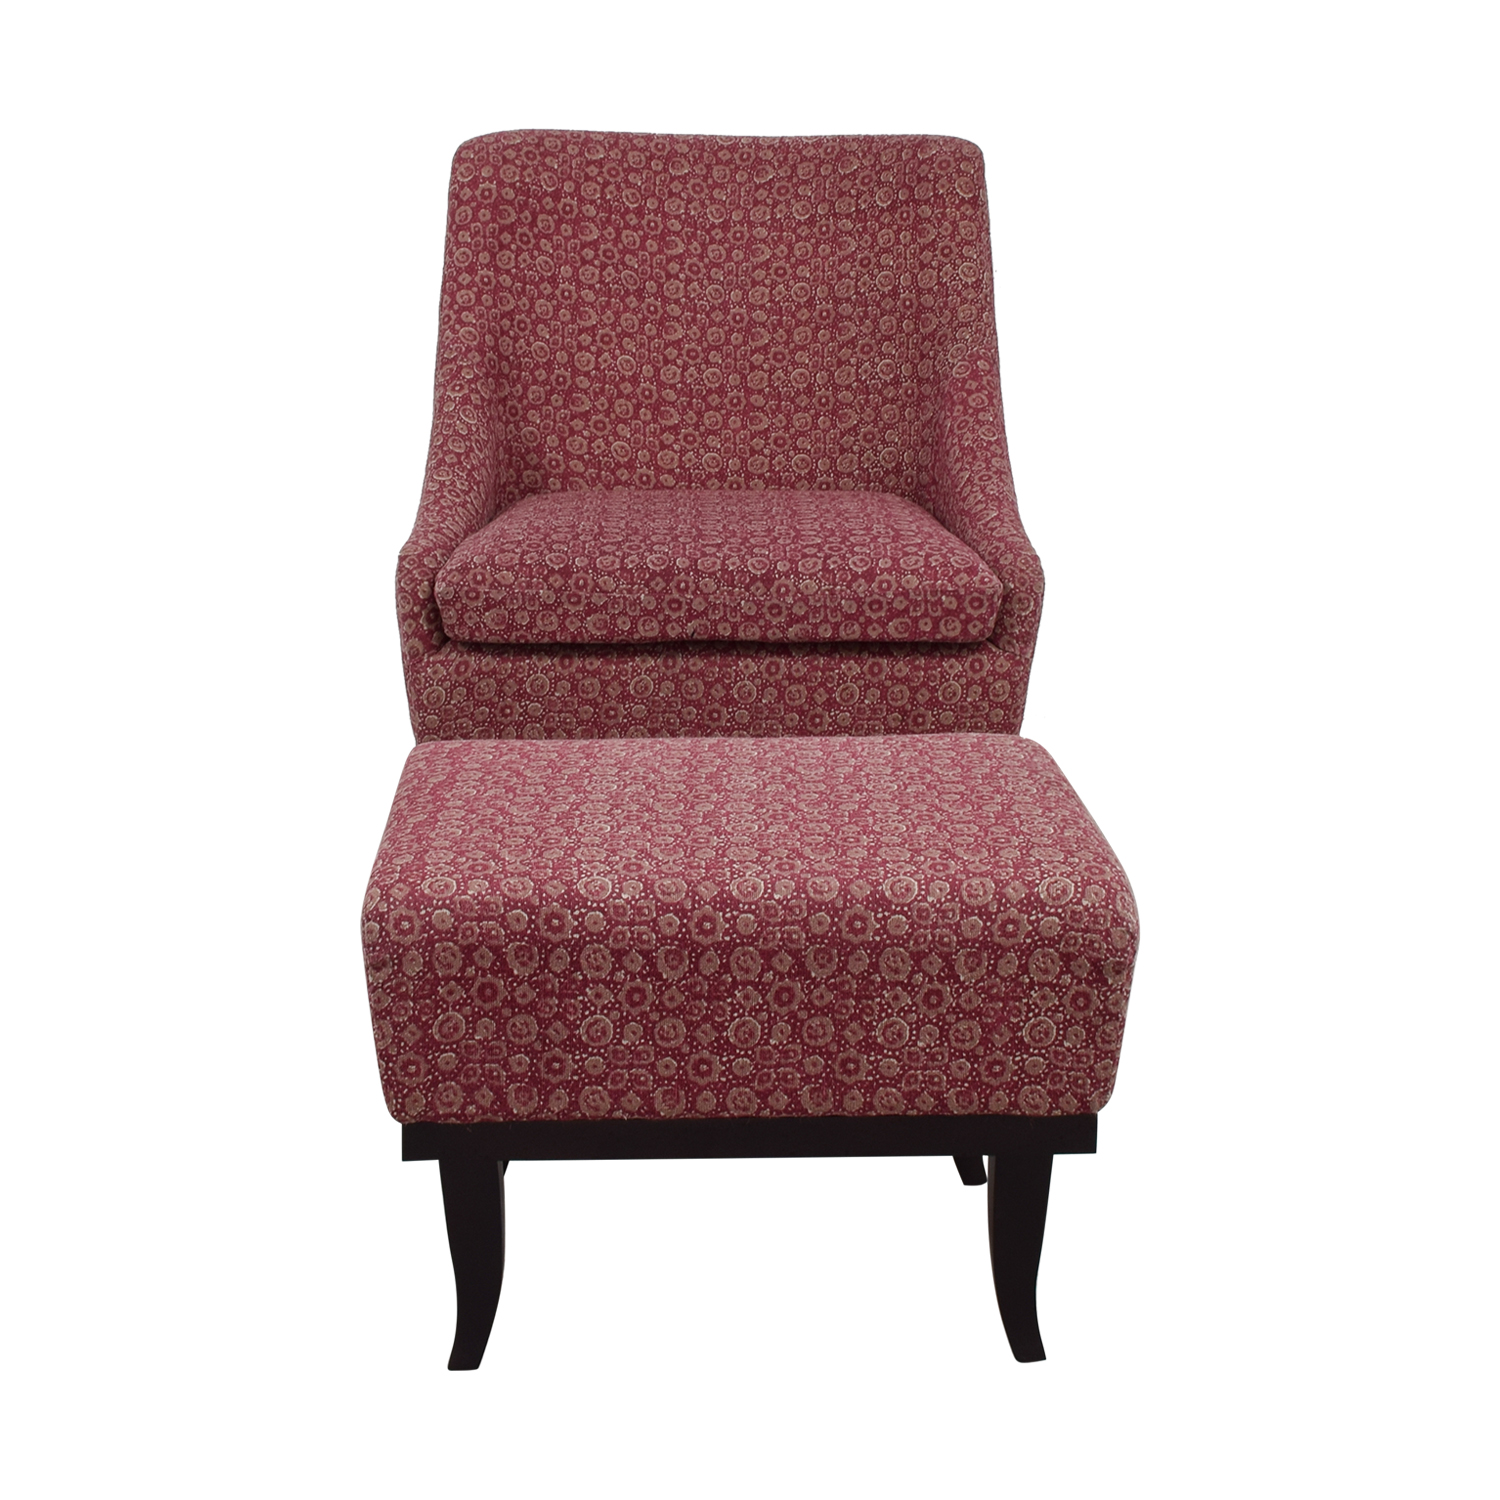 Manor and Mews Manor and Mews Cary Burgundy Armchair with Footstool coupon